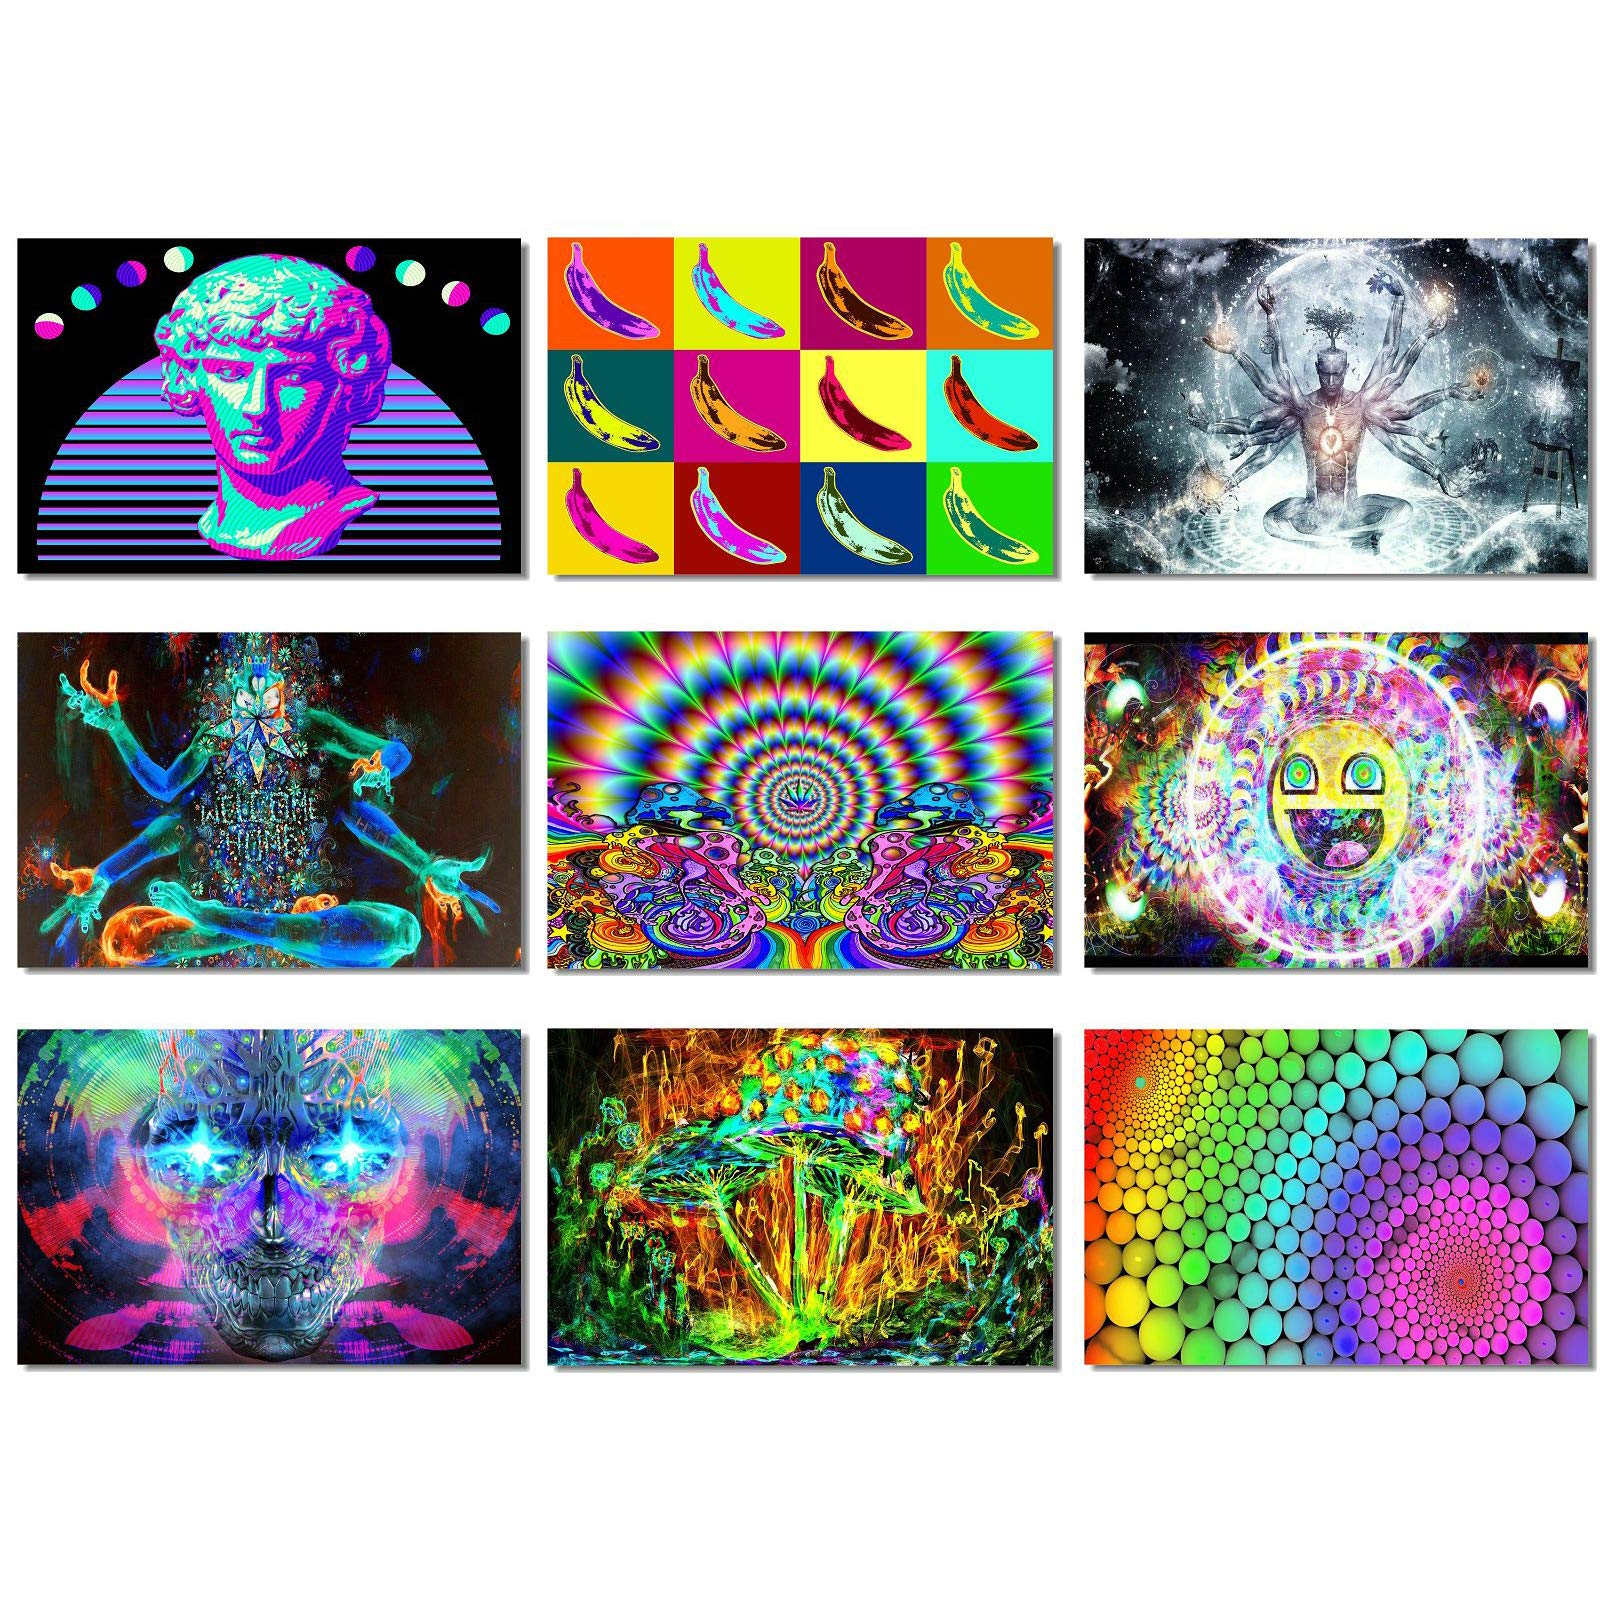 """9x Fabric Poster Psychedelic Trippy Colorful Trippy Surreal Abstract Astral Digital Wall Art Prints 20x13"""" (50x33cm) (1-9)(Not Blacklight)"""